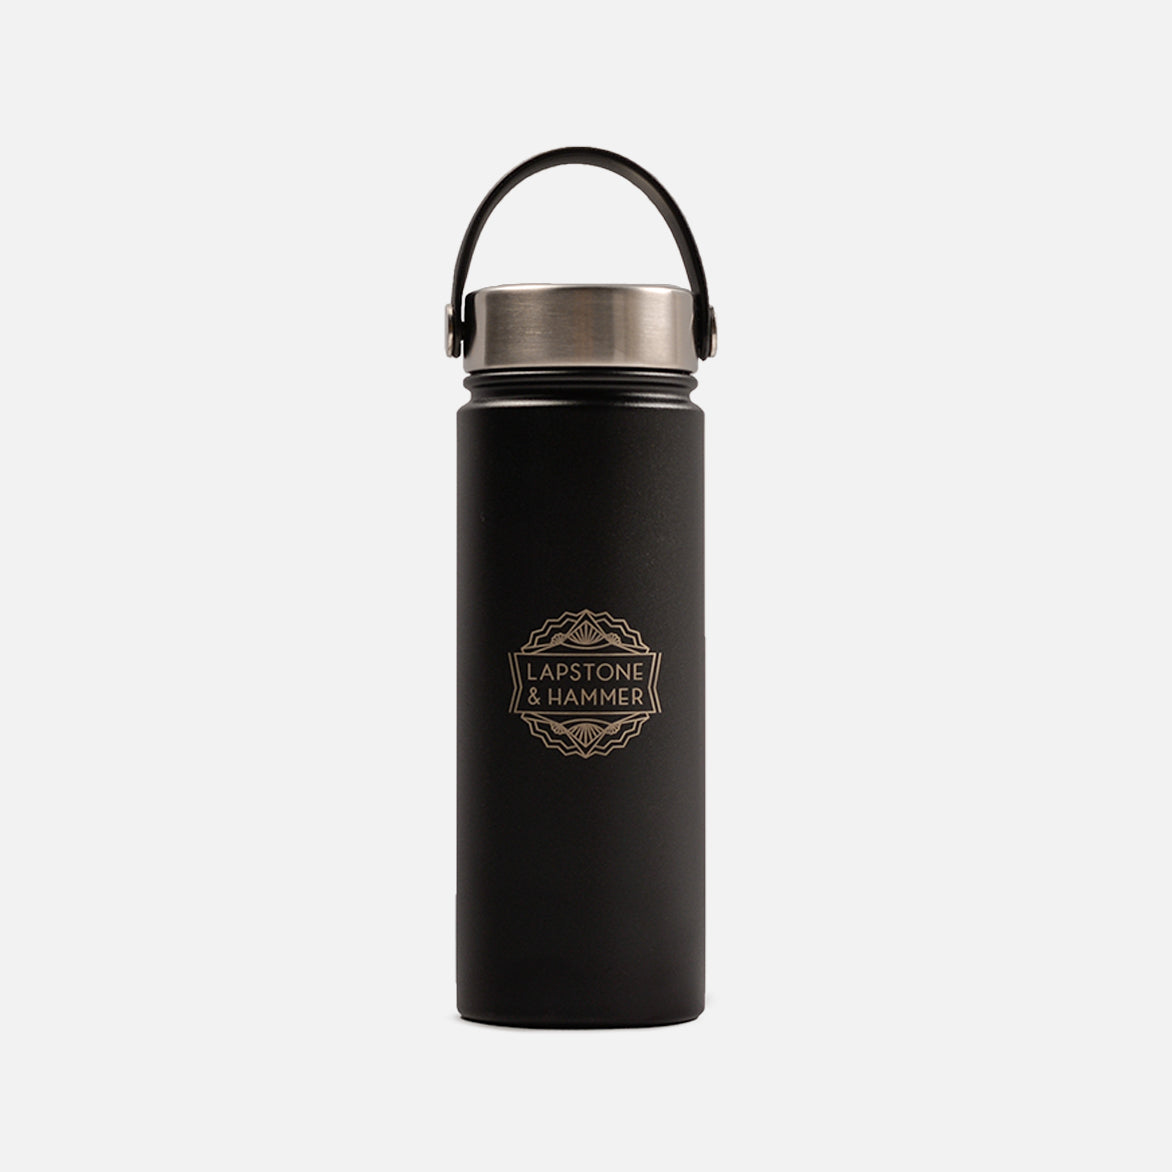 LAPSTONE & HAMMER HYDRA WATER BOTTLE